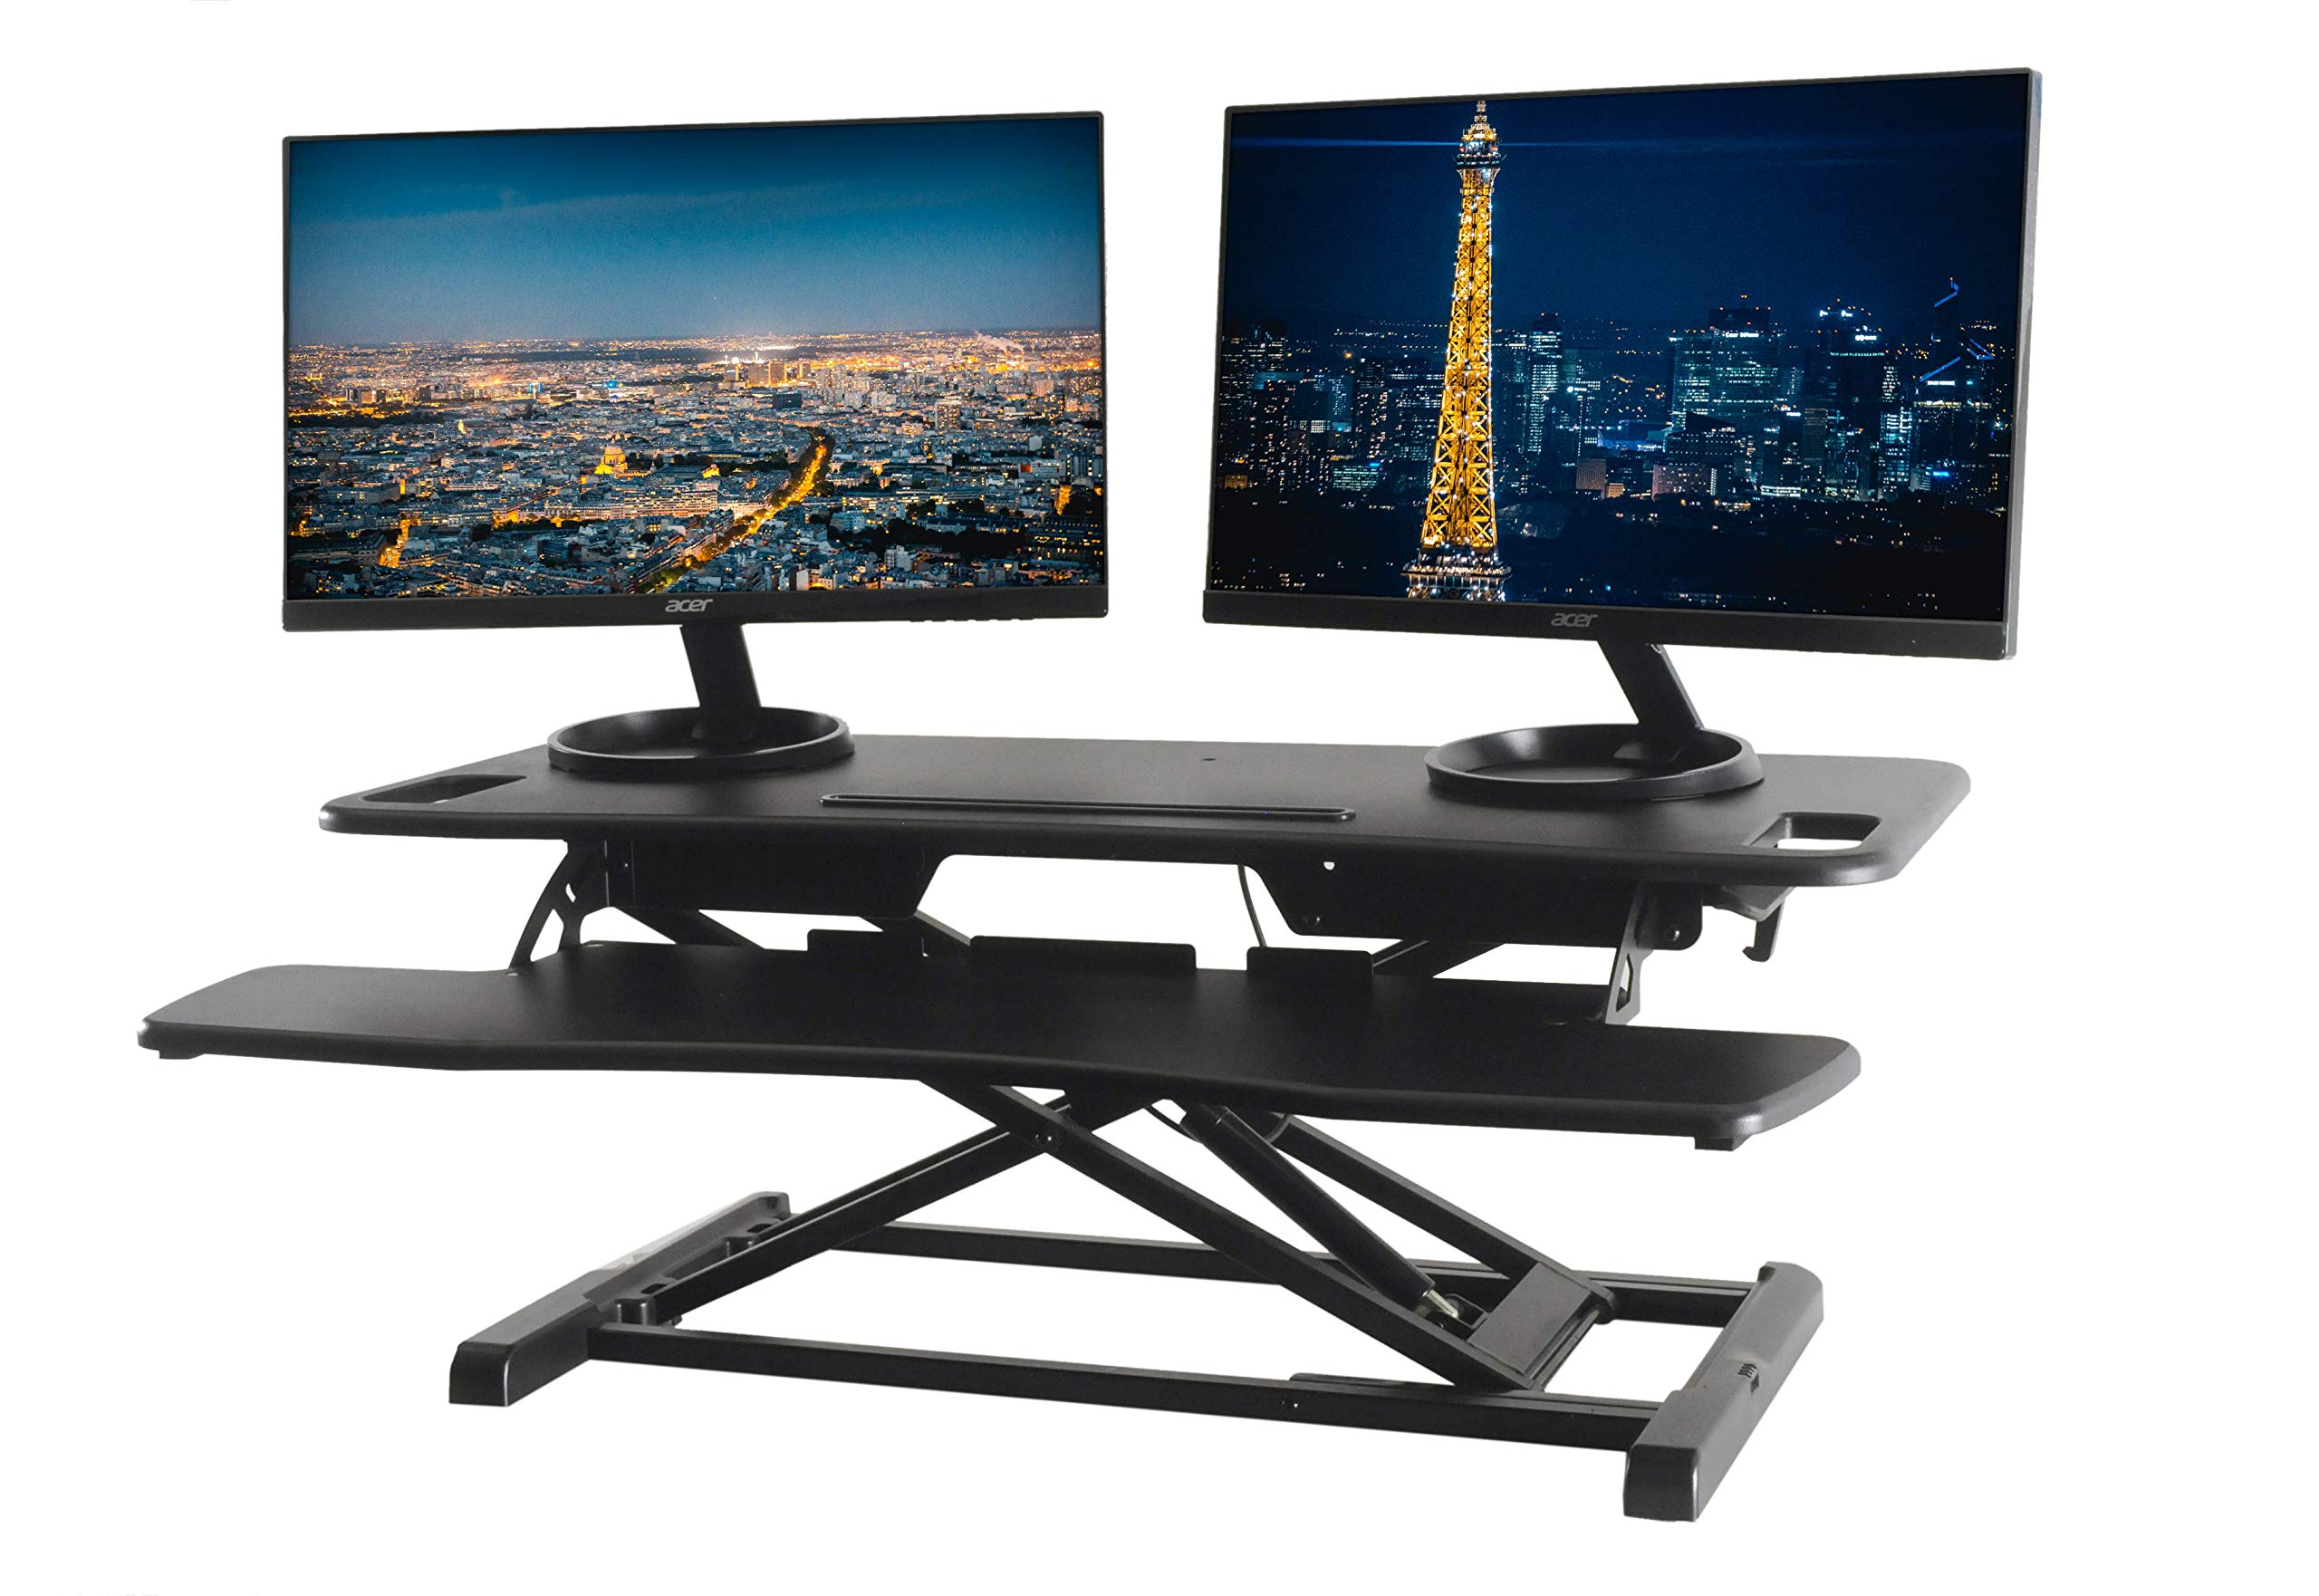 TechOrbits Standing Desk Converter - 37'' Stand Up Desk Riser - Tabletop Sit Stand Desk Fits Dual Monitors - Two Tiered Height Adjustable Workstation with Removal Keyboard Tray by TechOrbits